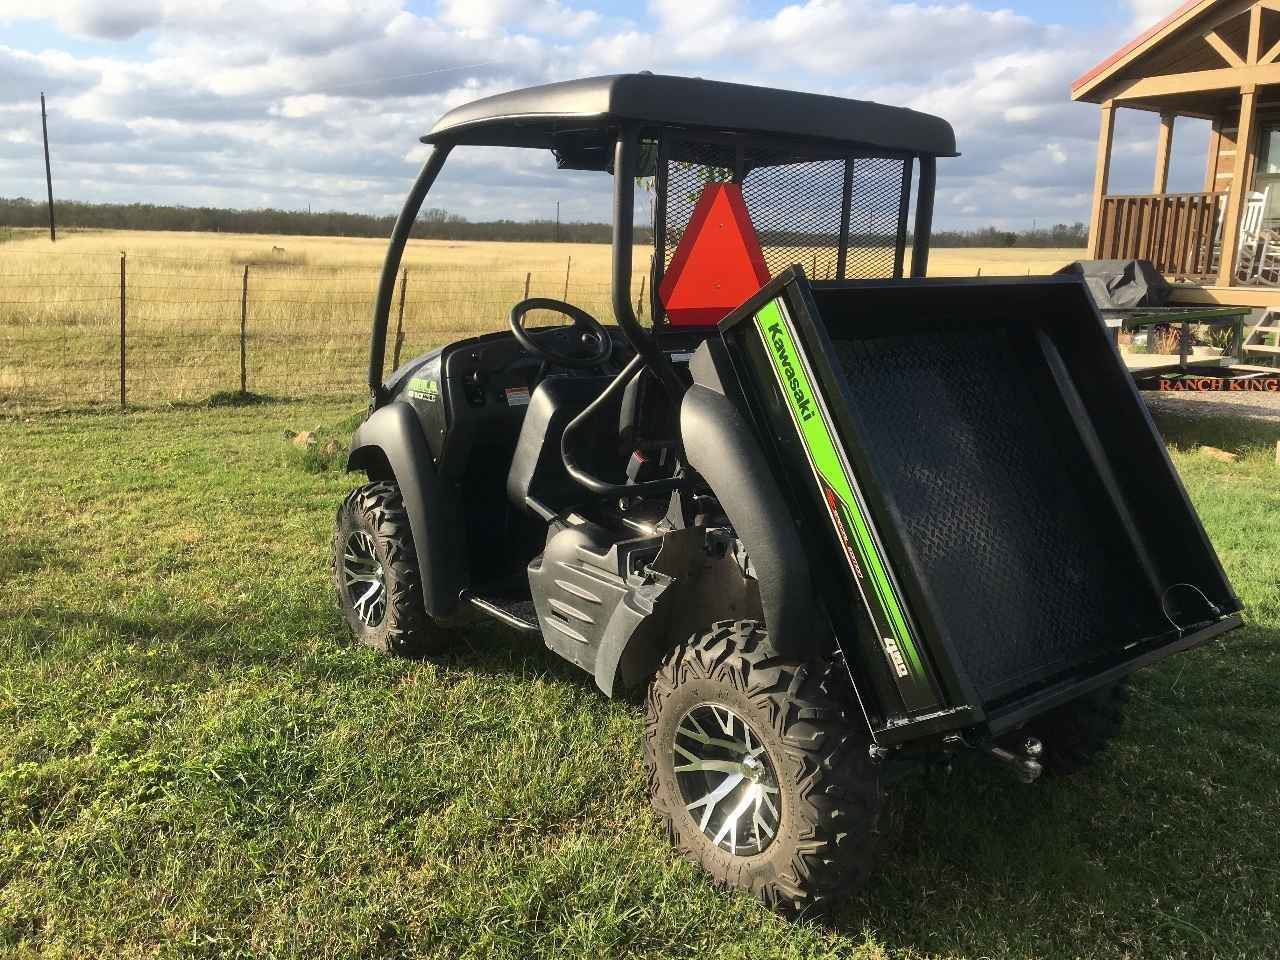 used 2014 kawasaki mule 610 4x4 xc atvs for sale in texas. comes